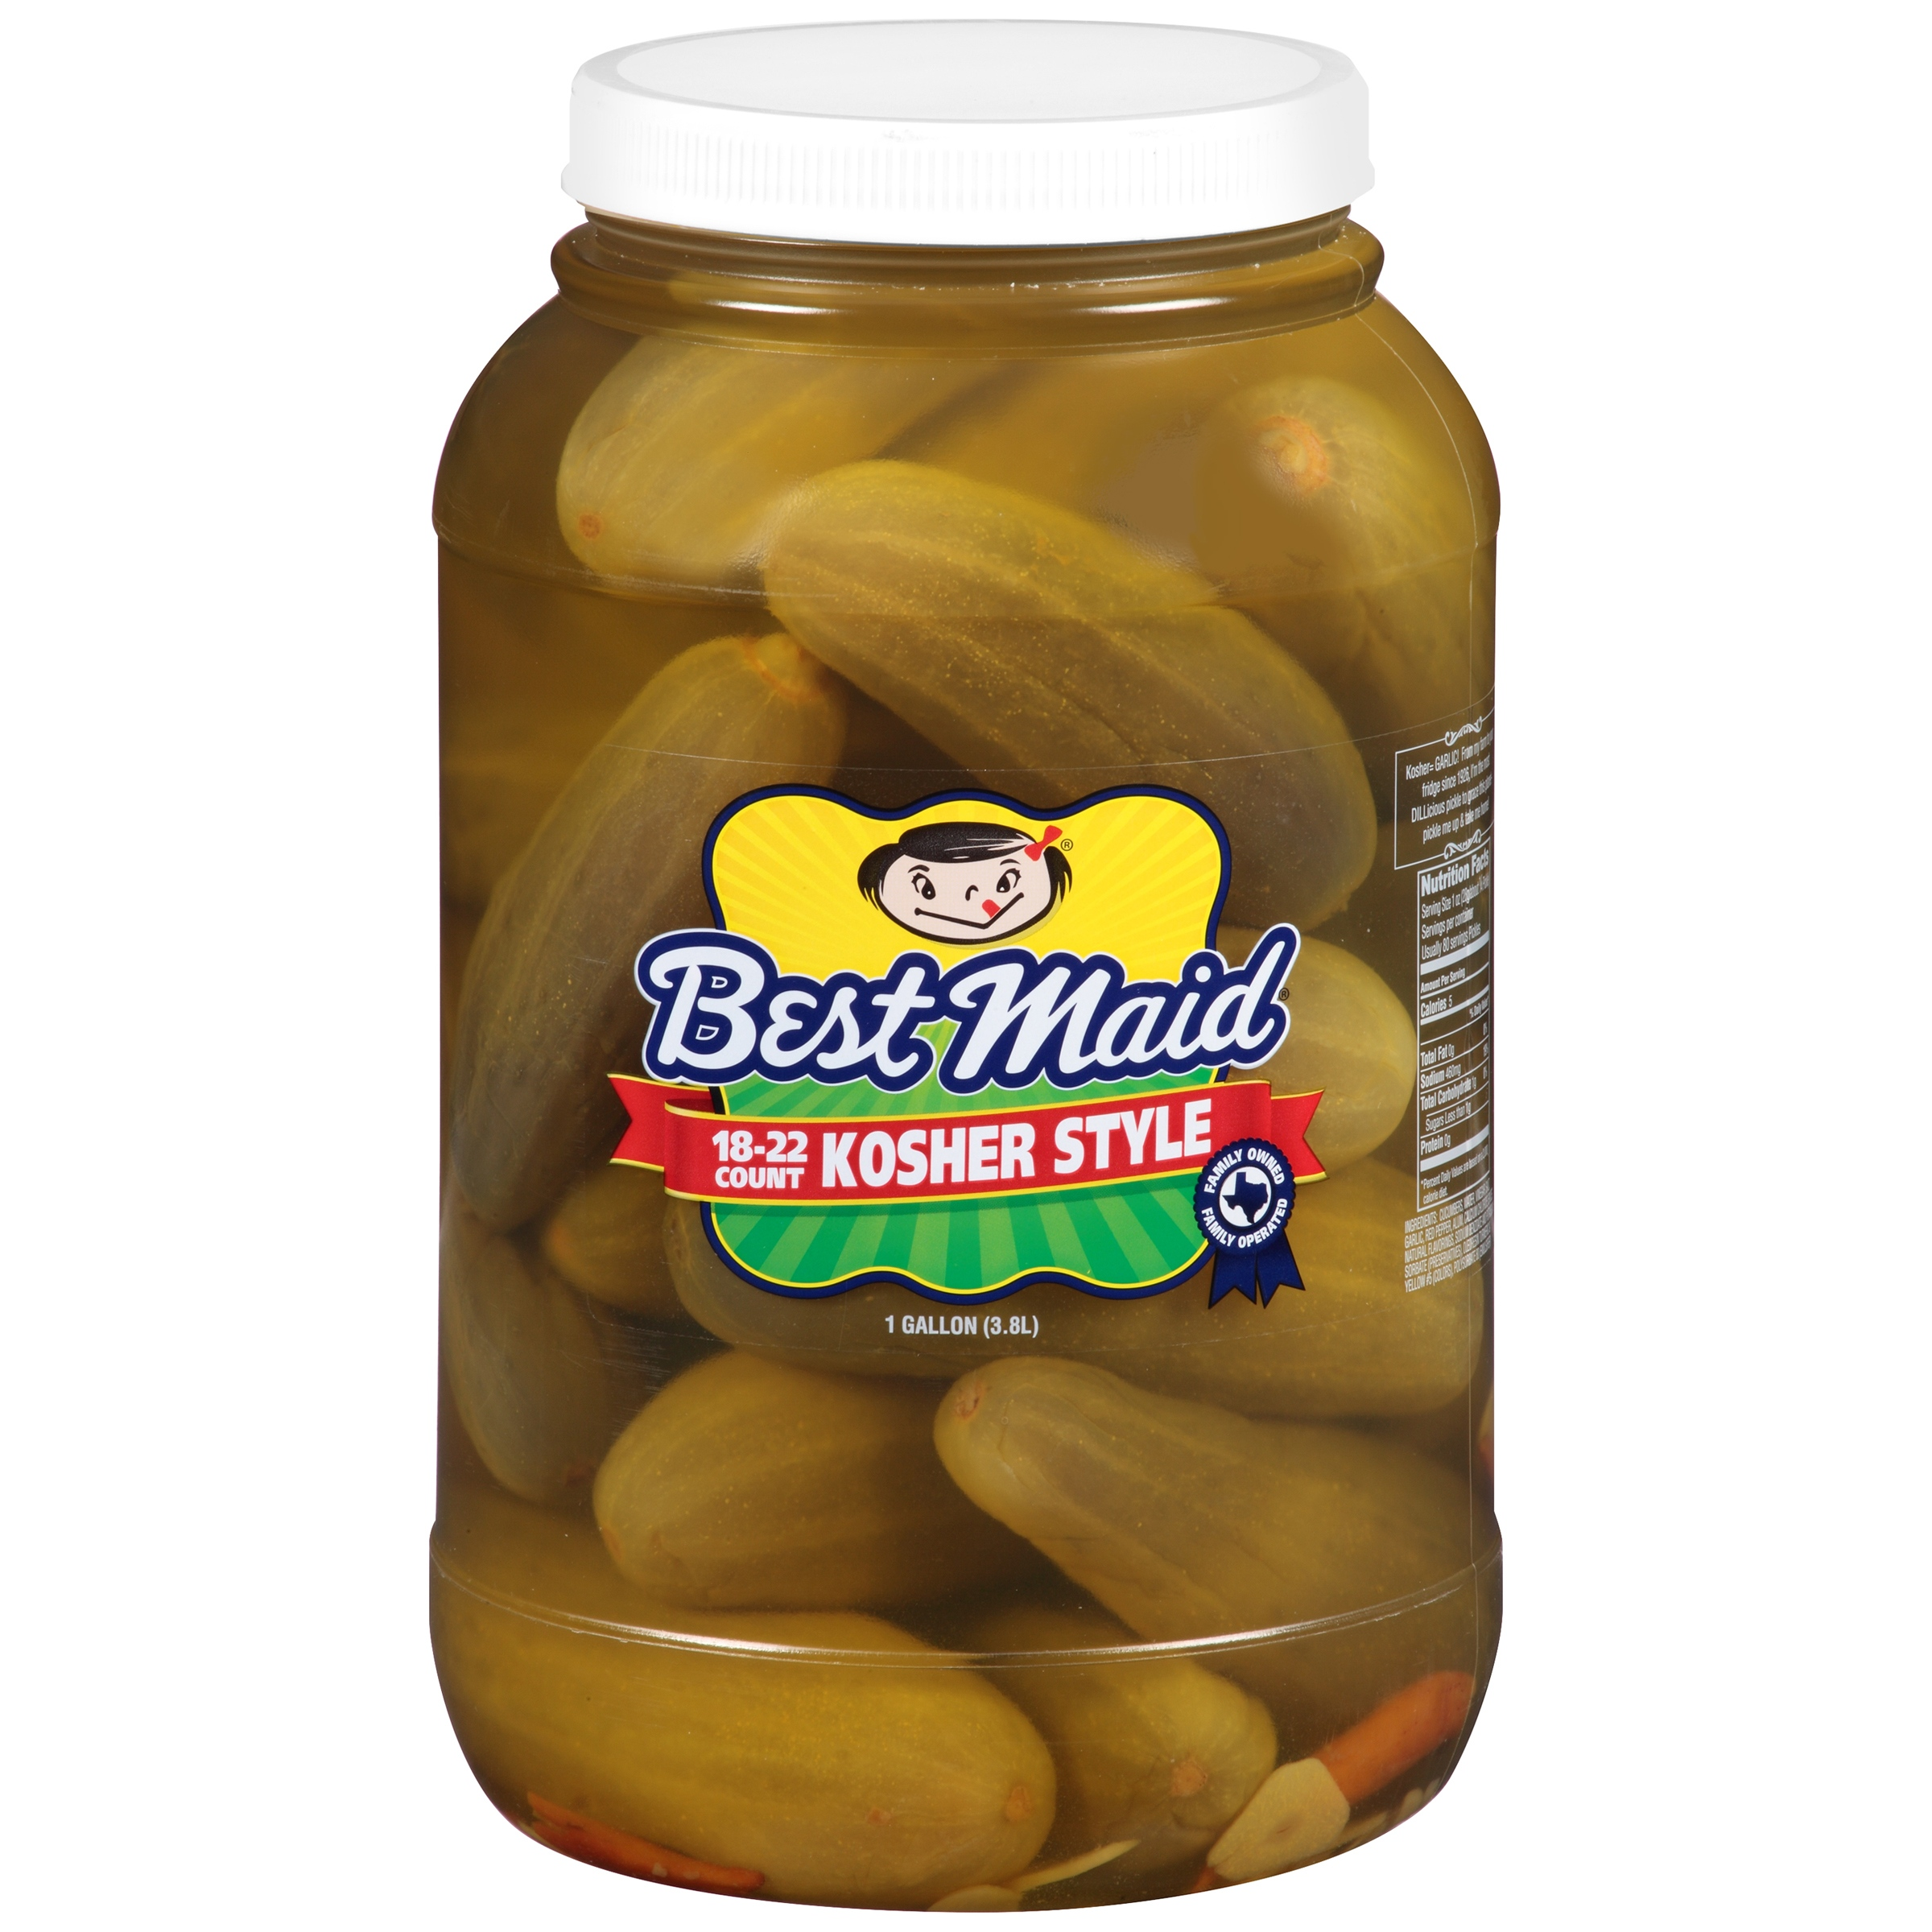 Best Maid Kosher Style Pickles 1 gal. Plastic Jar by BEST MAID PRODUCTS INC